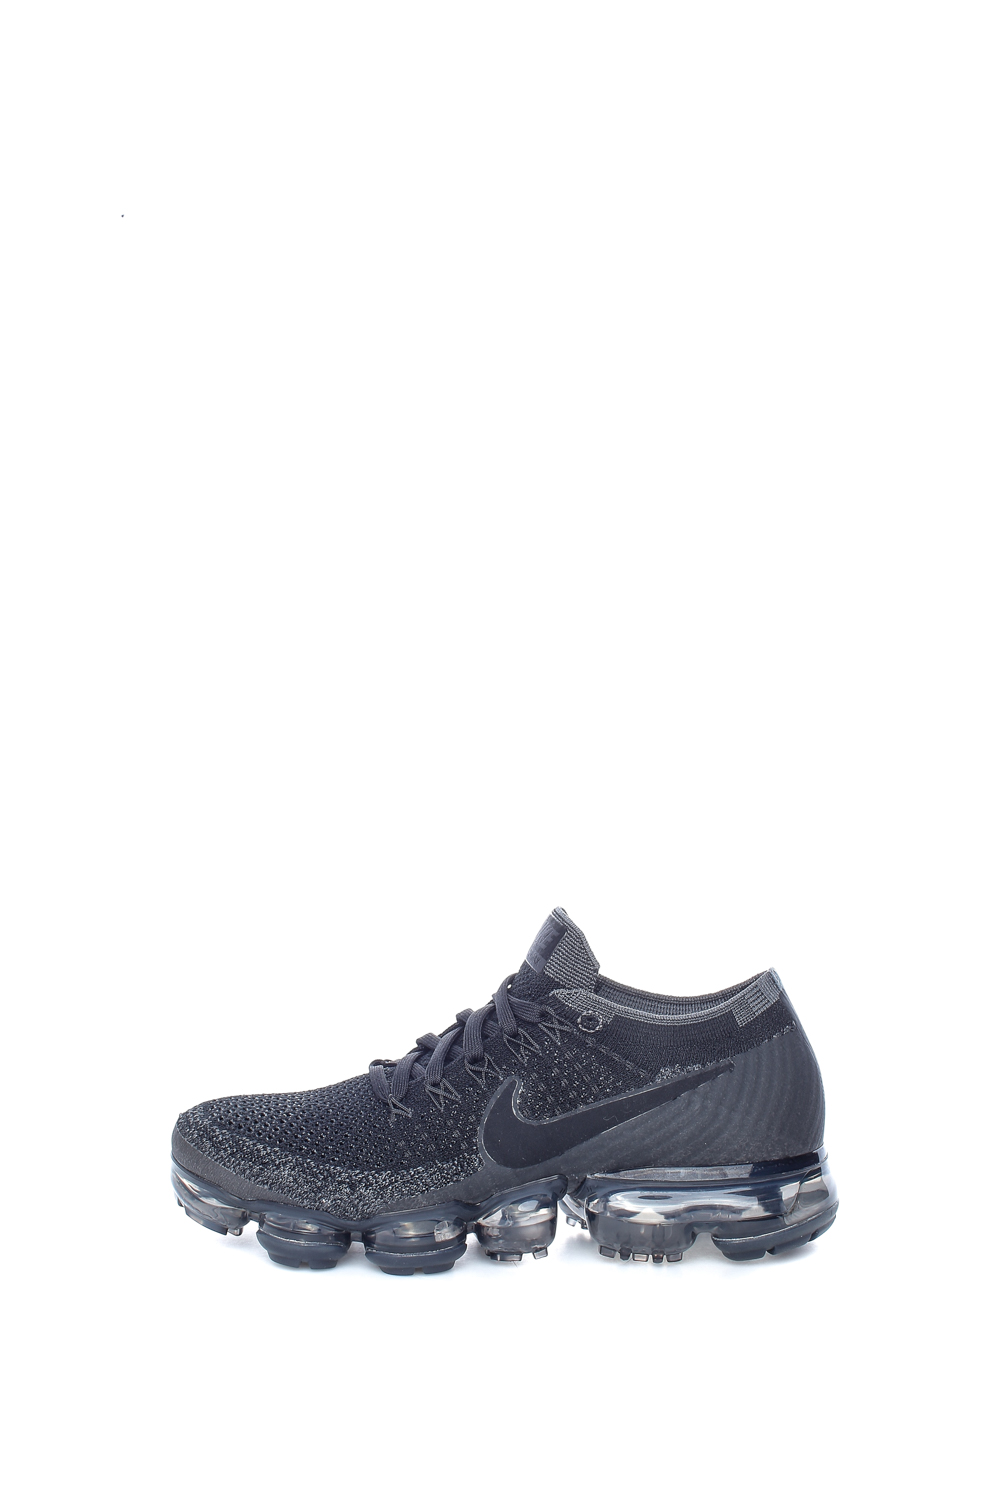 NIKE – Γυναικεία Nike Air VaporMax Flyknit Running Shoe